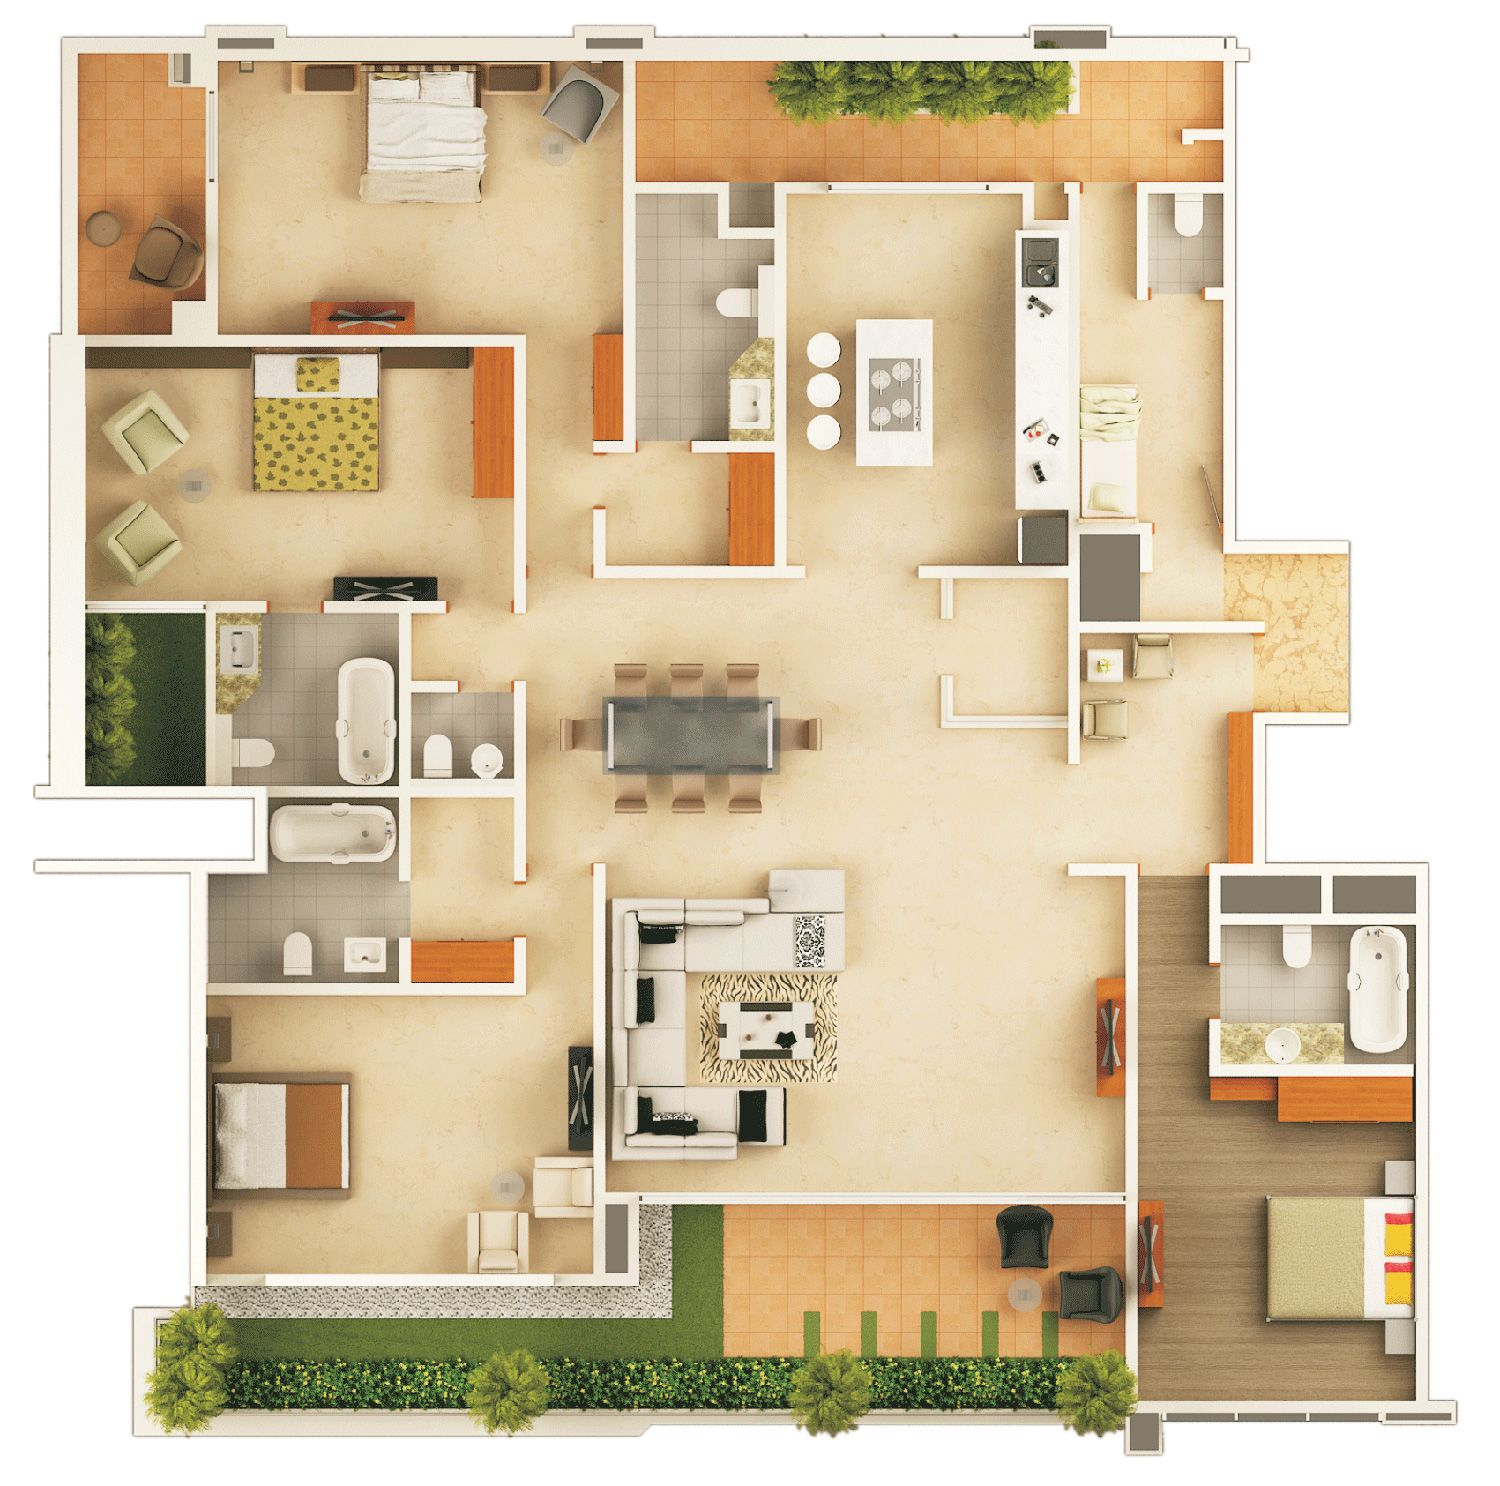 3d Floor Plan Apartment - Google Search In 2019